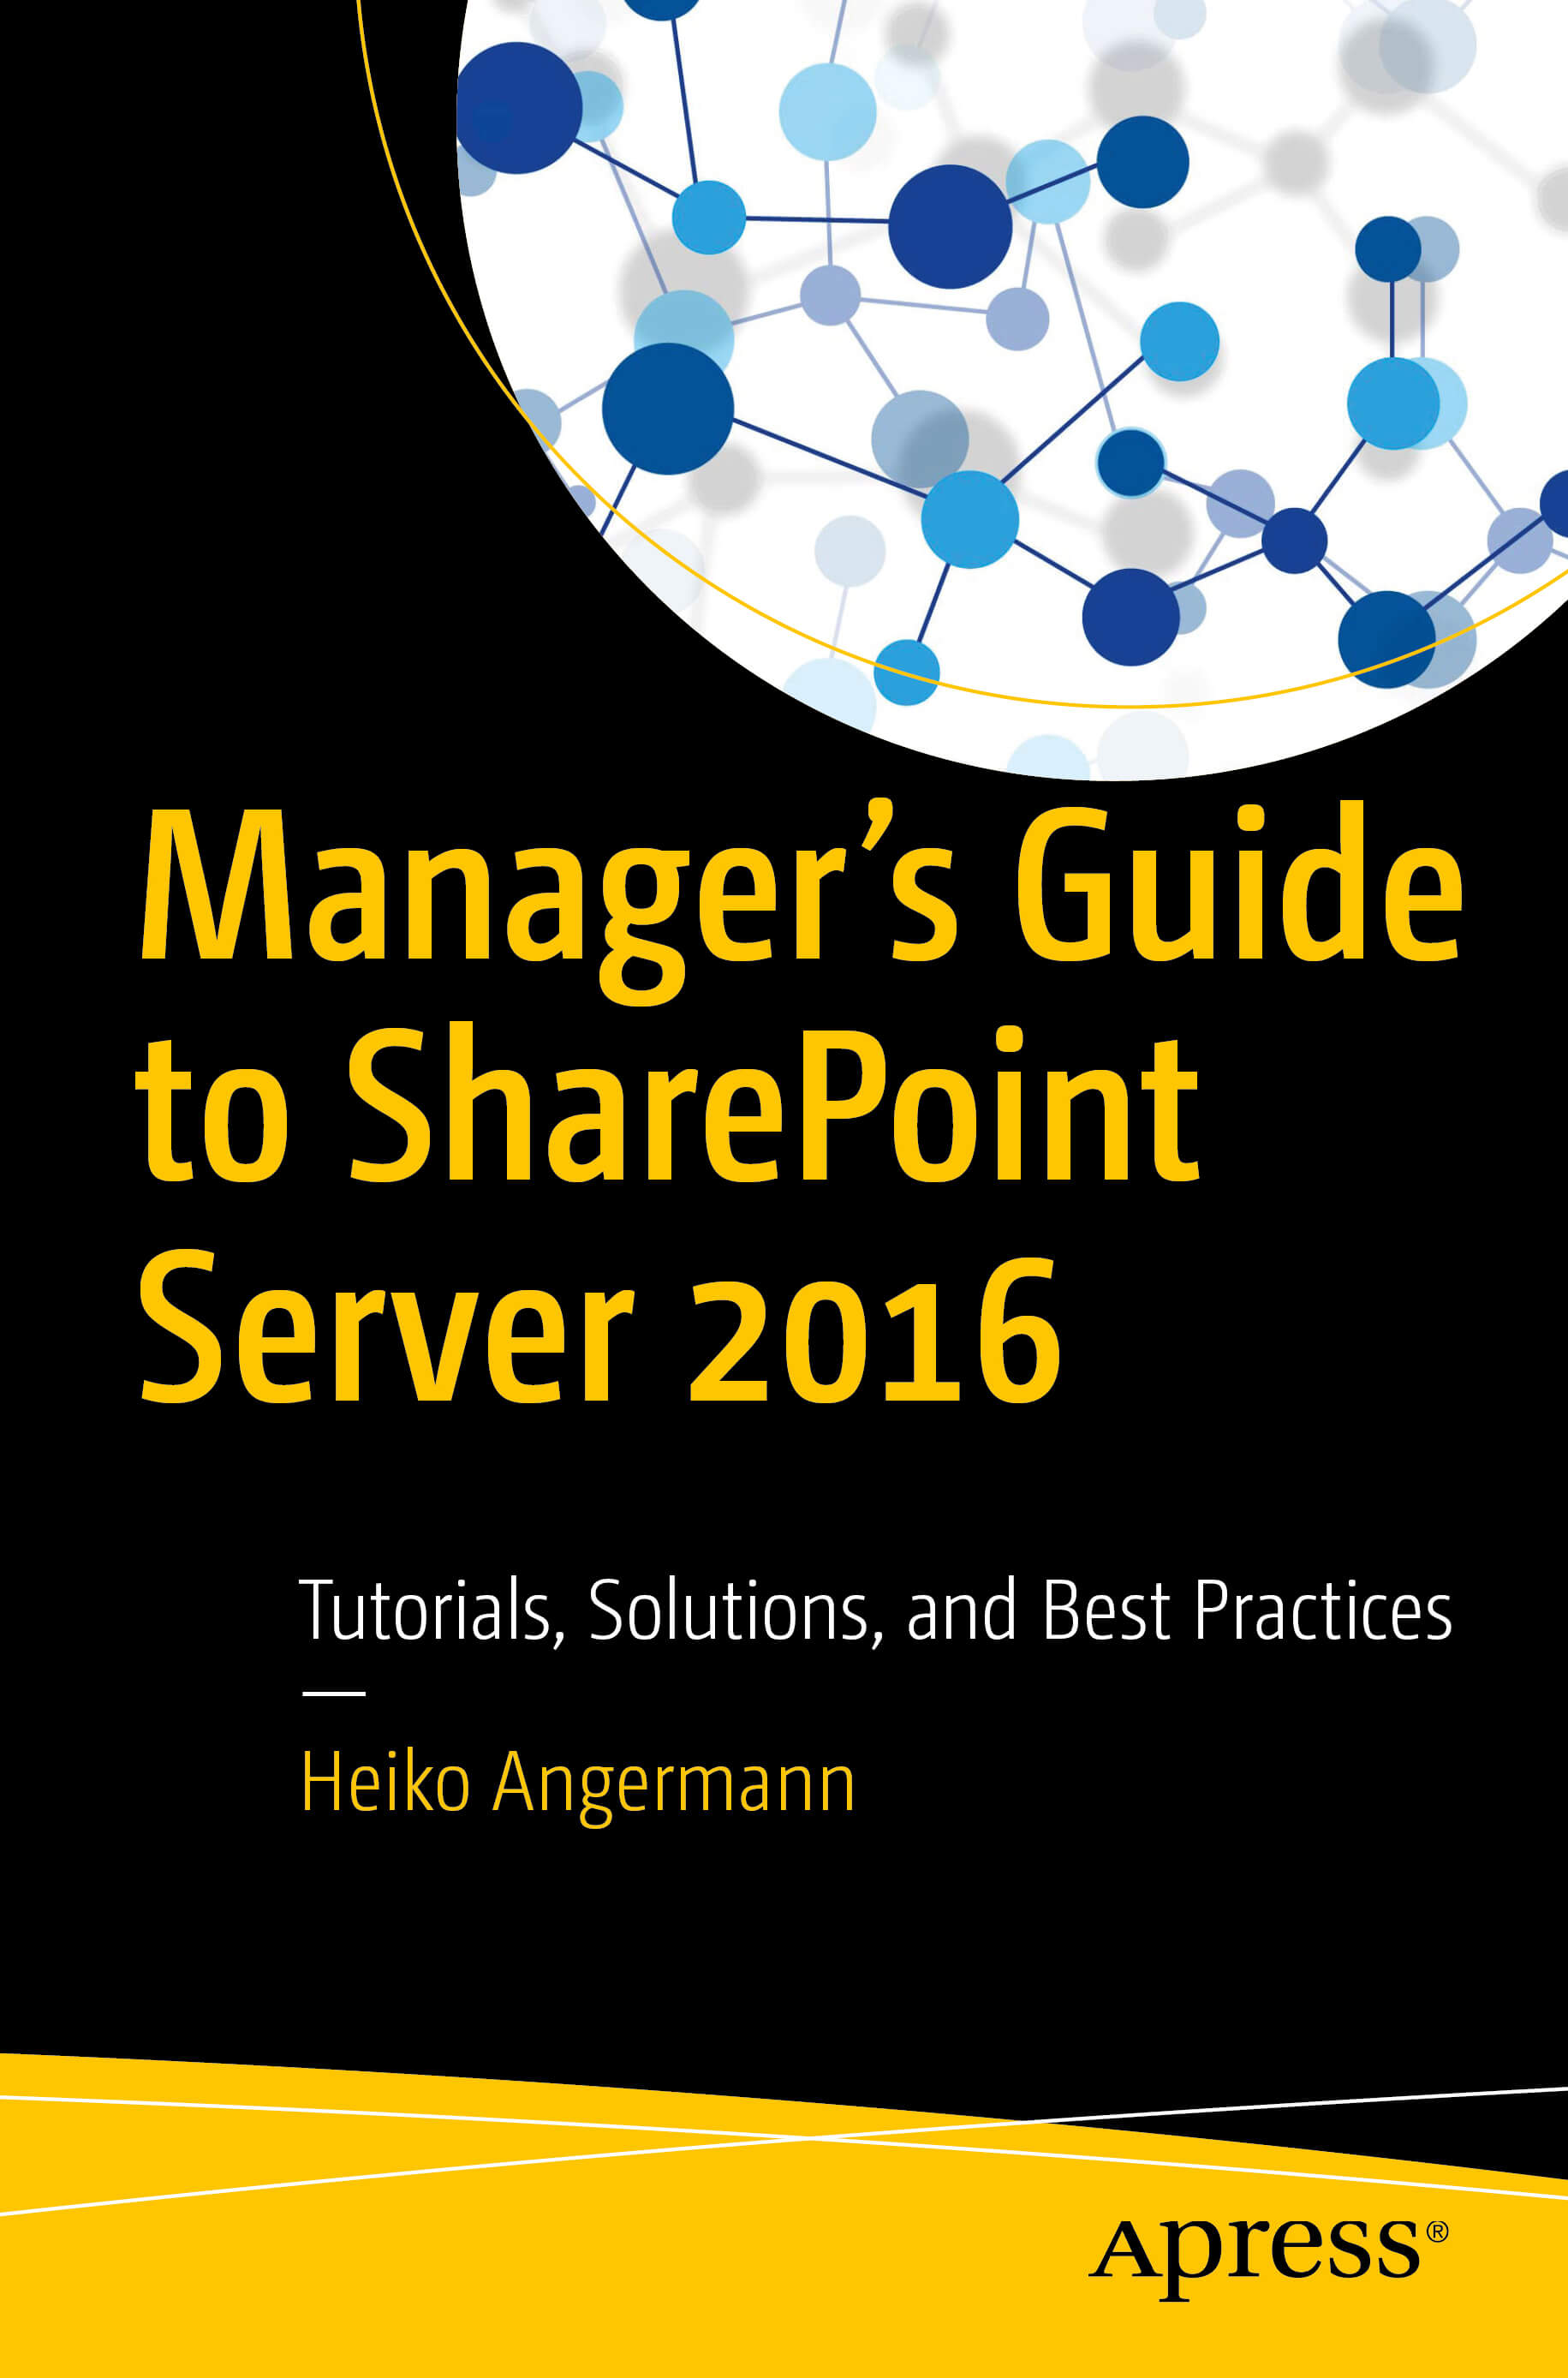 Managers Guide to SharePoint Server 2016  Download the preview now